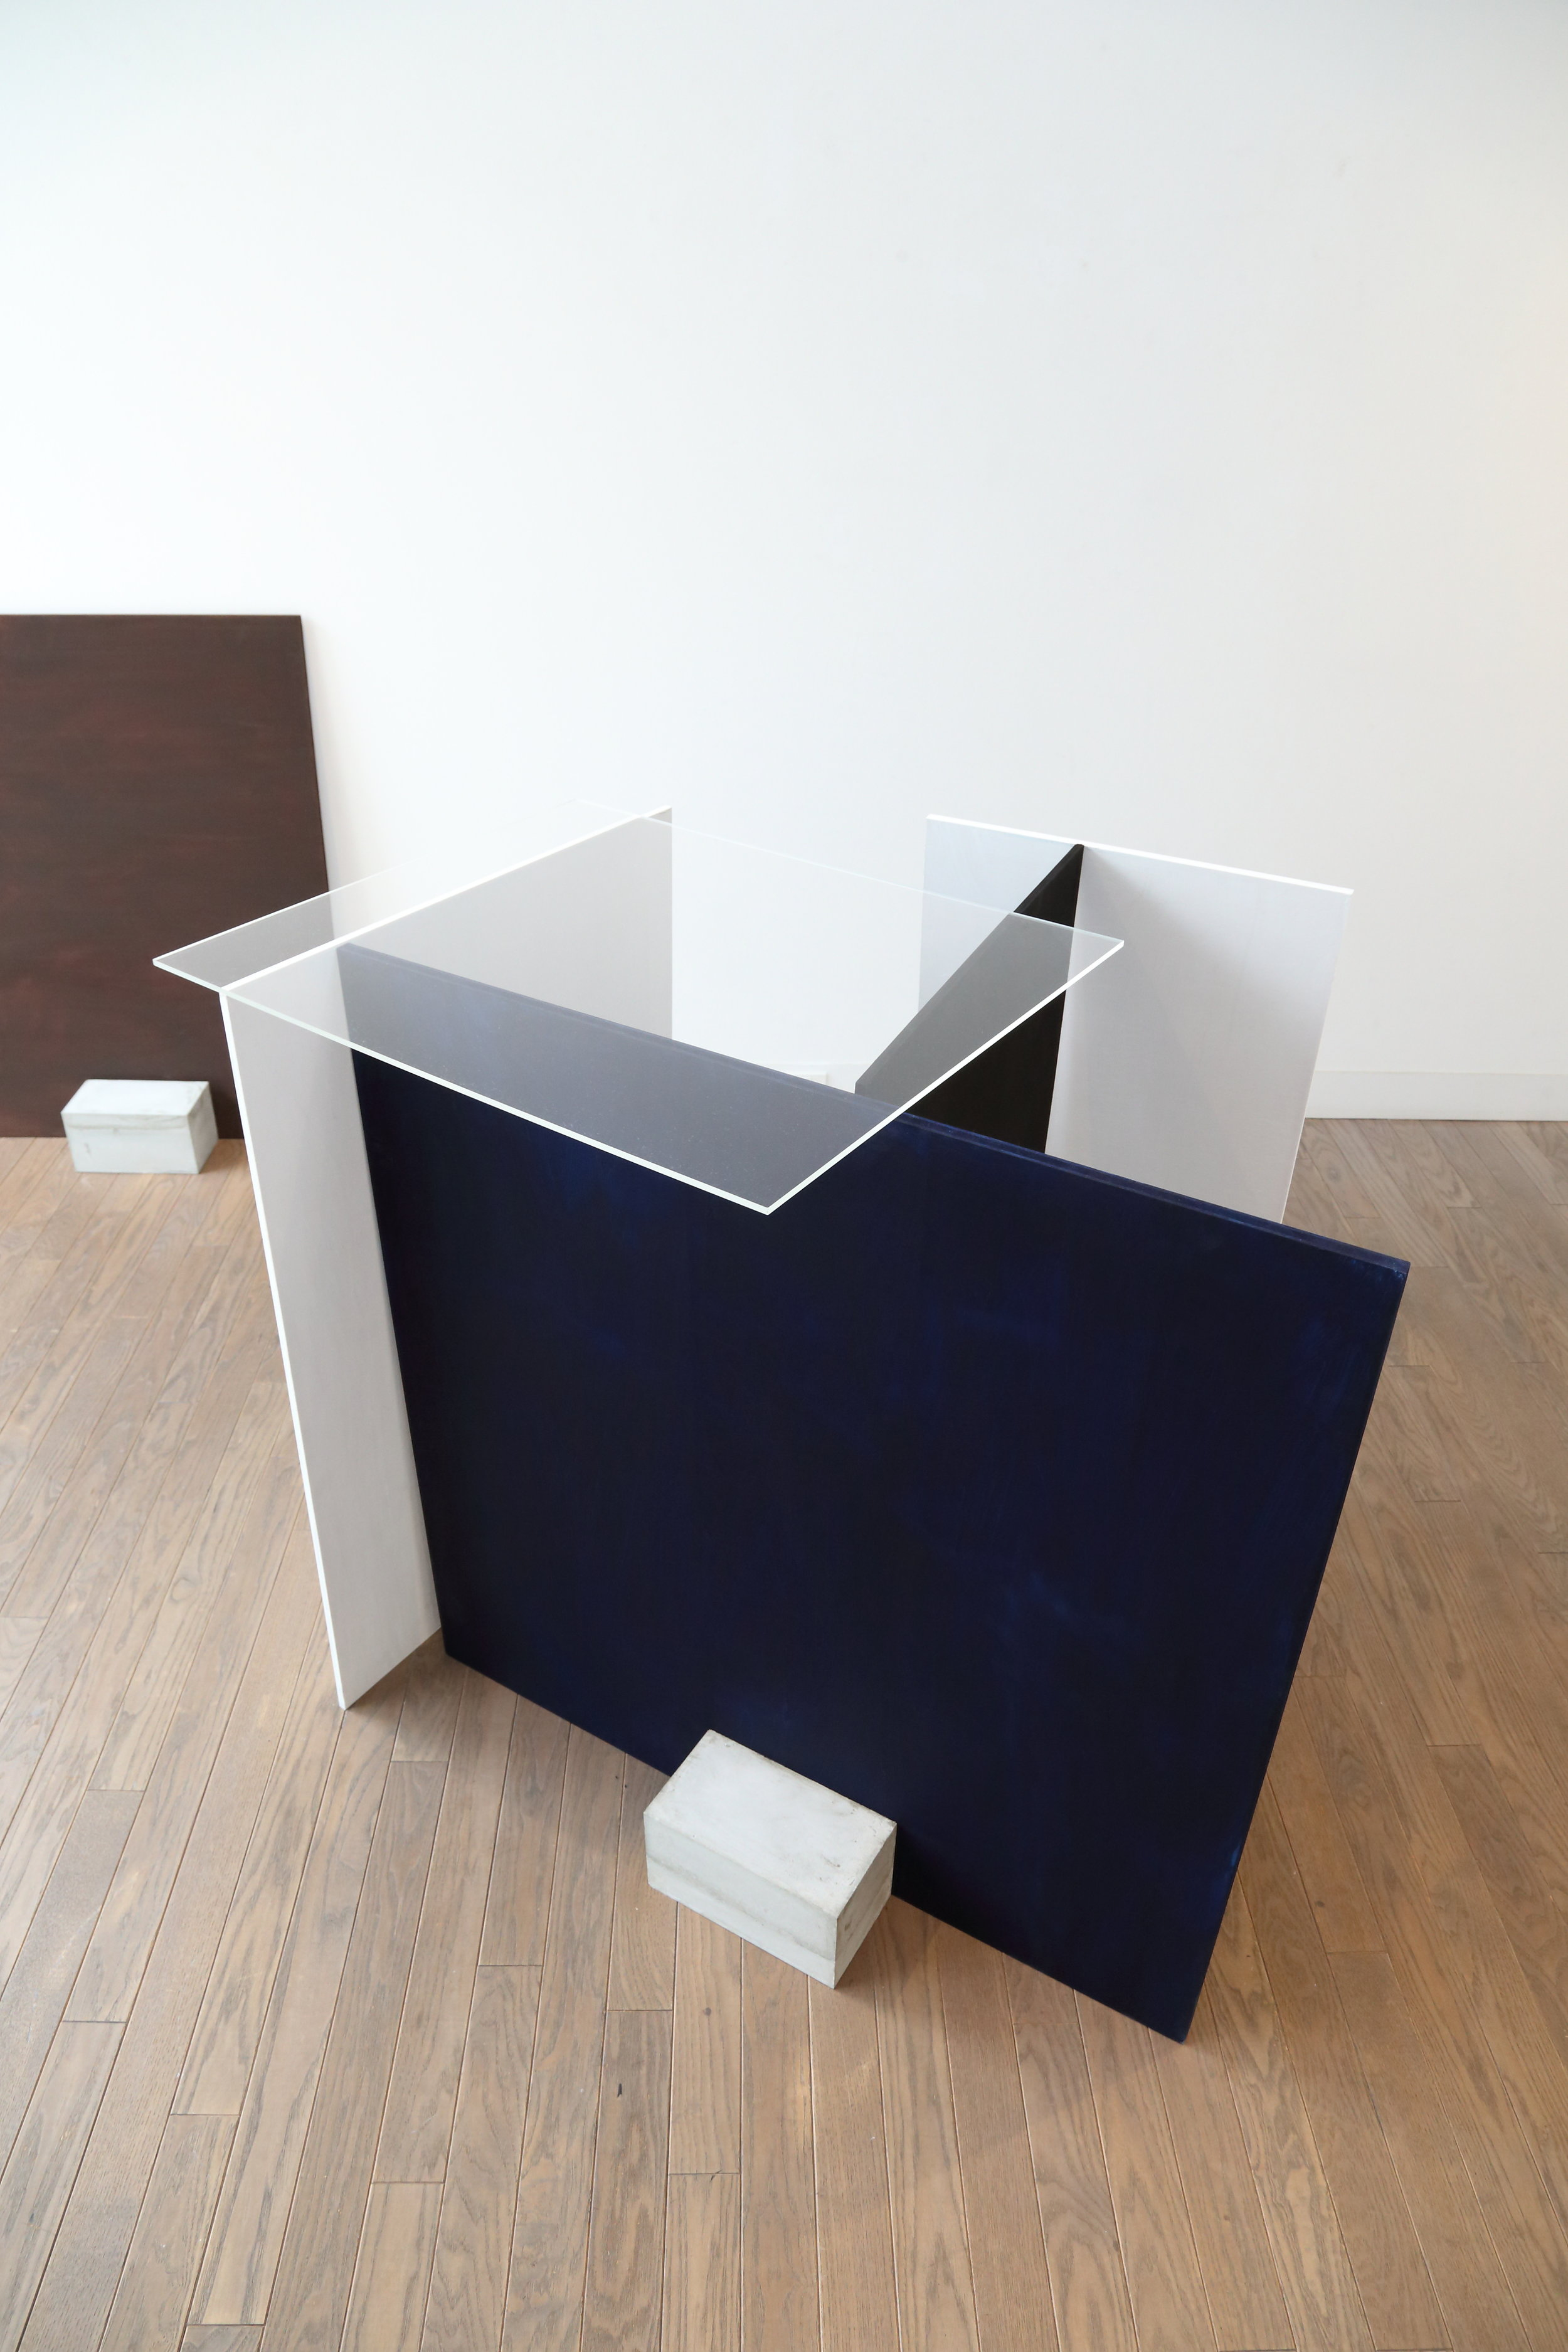 I use black and white. And I add blue and brown. Wood, tempera, acrylic glass, concrete. Installation, Gallery Retara, Sapporo, 2014, group exhibition.